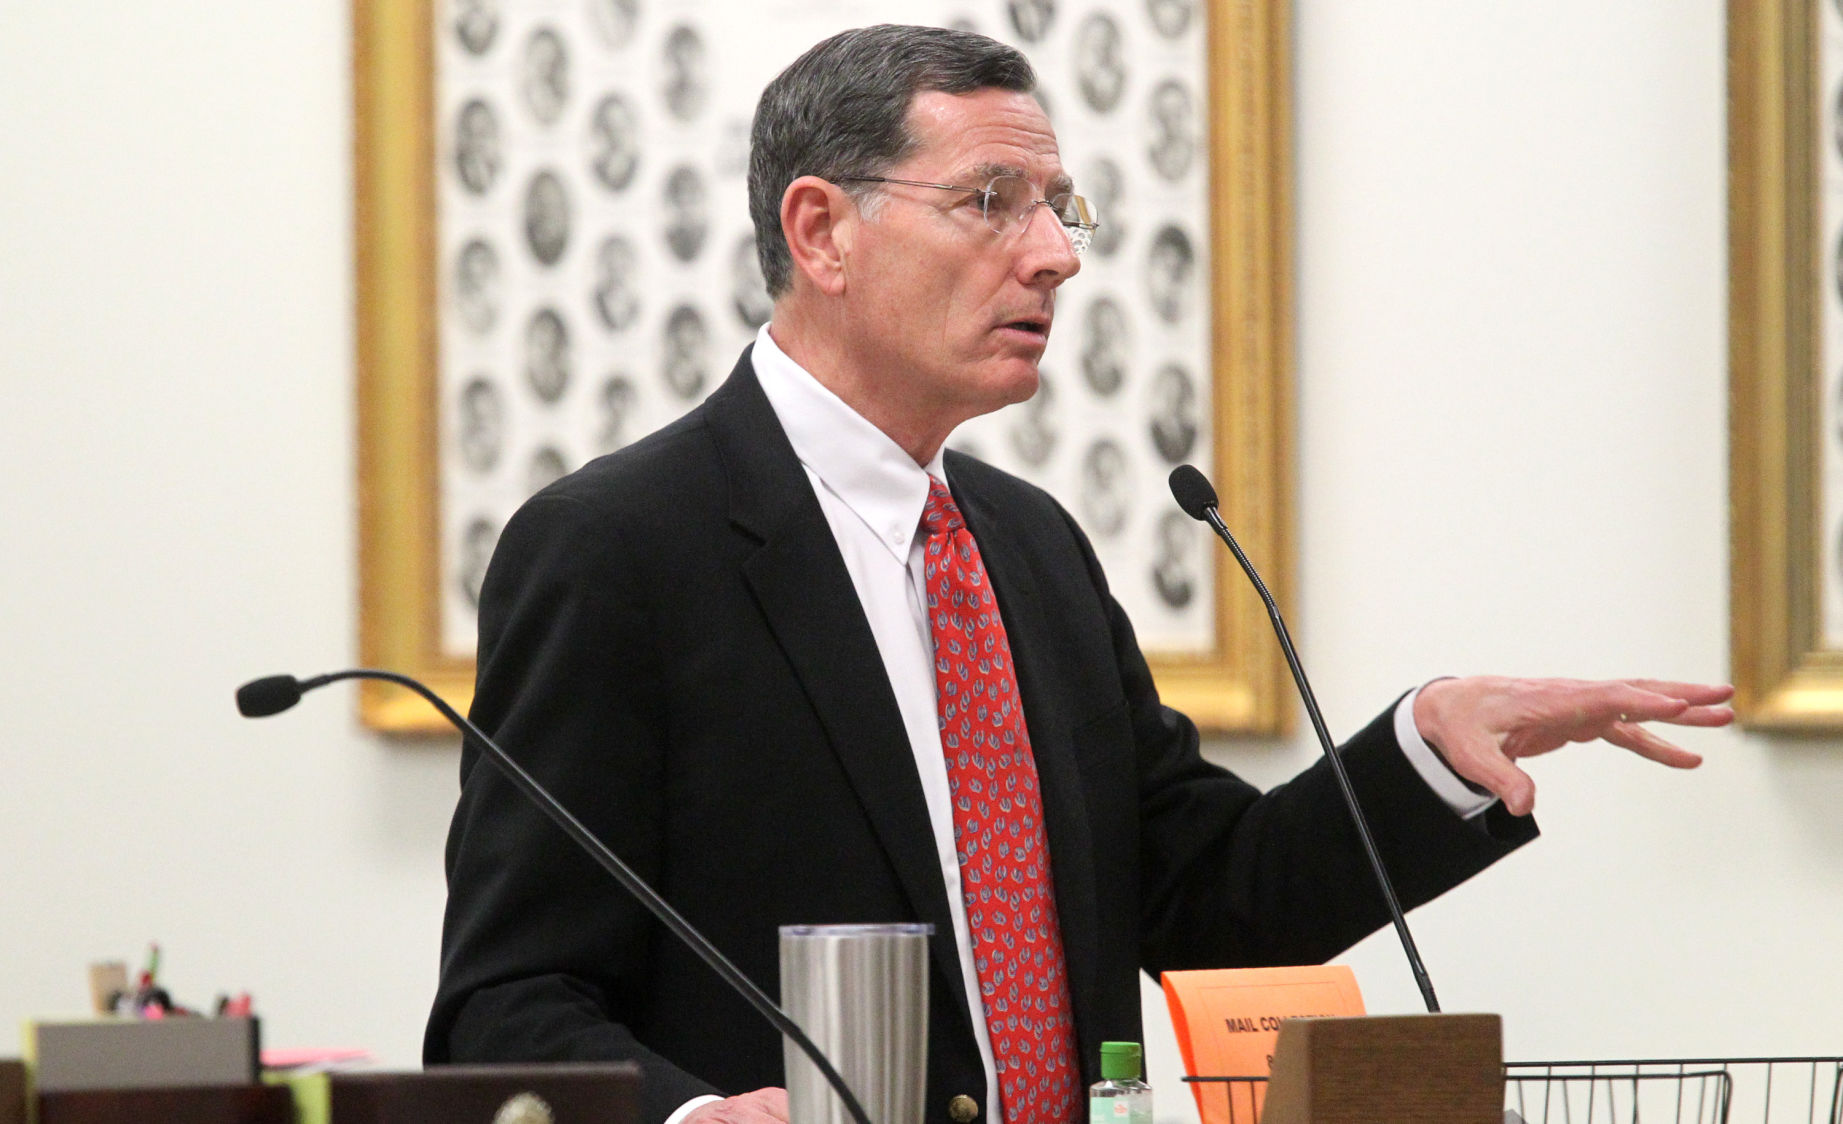 Sen. Barrasso widens money lead with out-of-state donors | Wyoming News